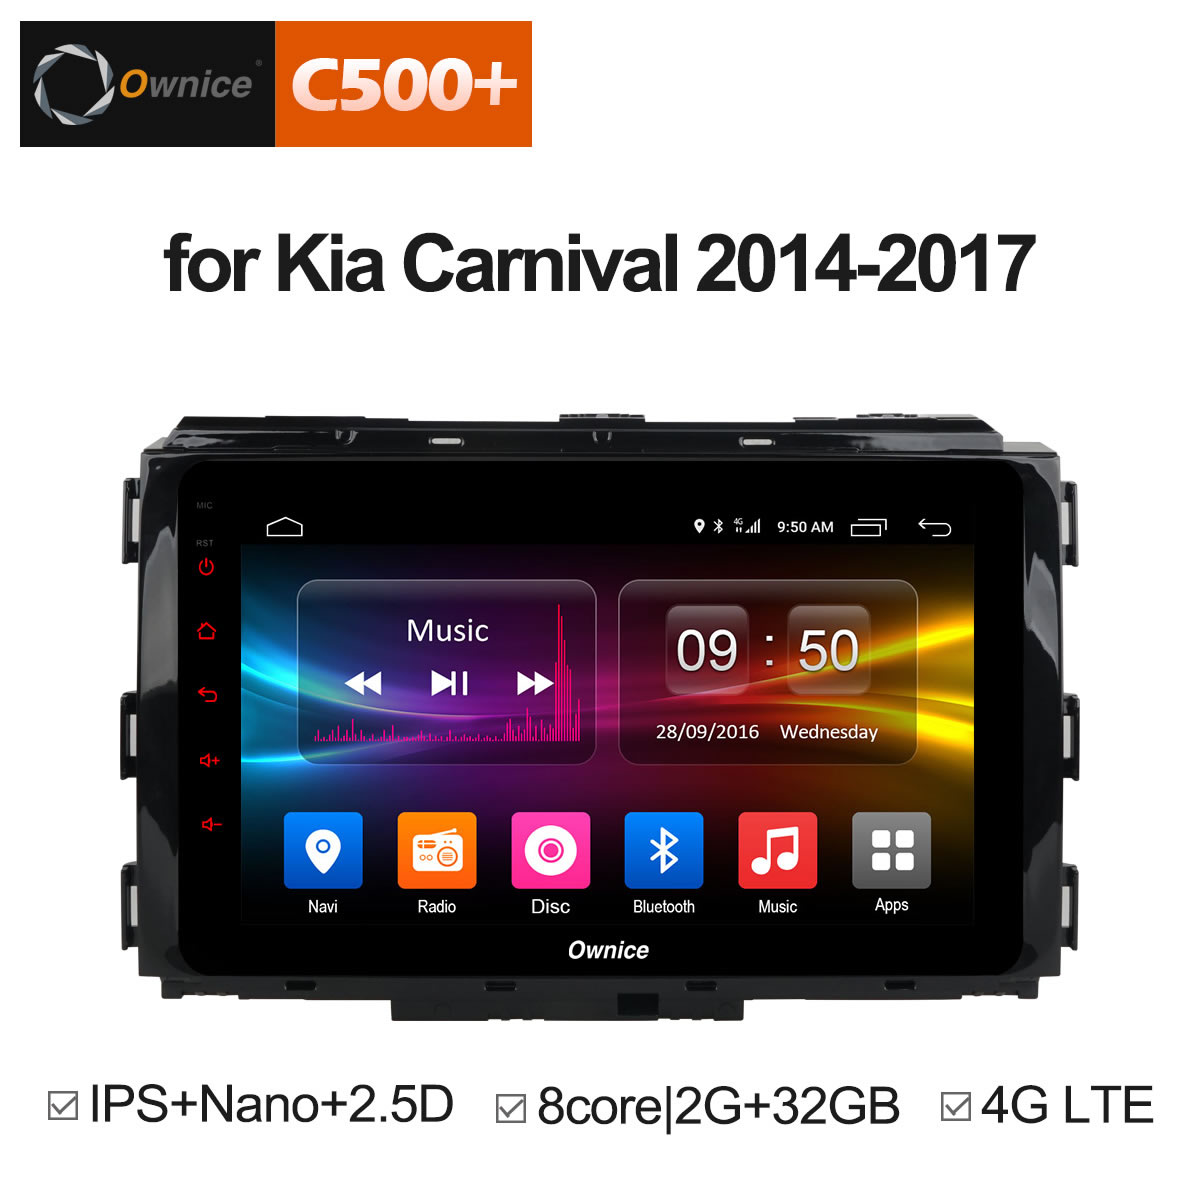 Ownice C500+ G10 32G ROM Octa Core Android 8.1 Car DVD Radio GPS Navigation Player for Kia Carnival 2014 - 2017 Carplay 4G LTE ownice c500 4g sim lte octa 8 core android 6 0 for kia ceed 2013 2015 car dvd player gps navi radio wifi 4g bt 2gb ram 32g rom